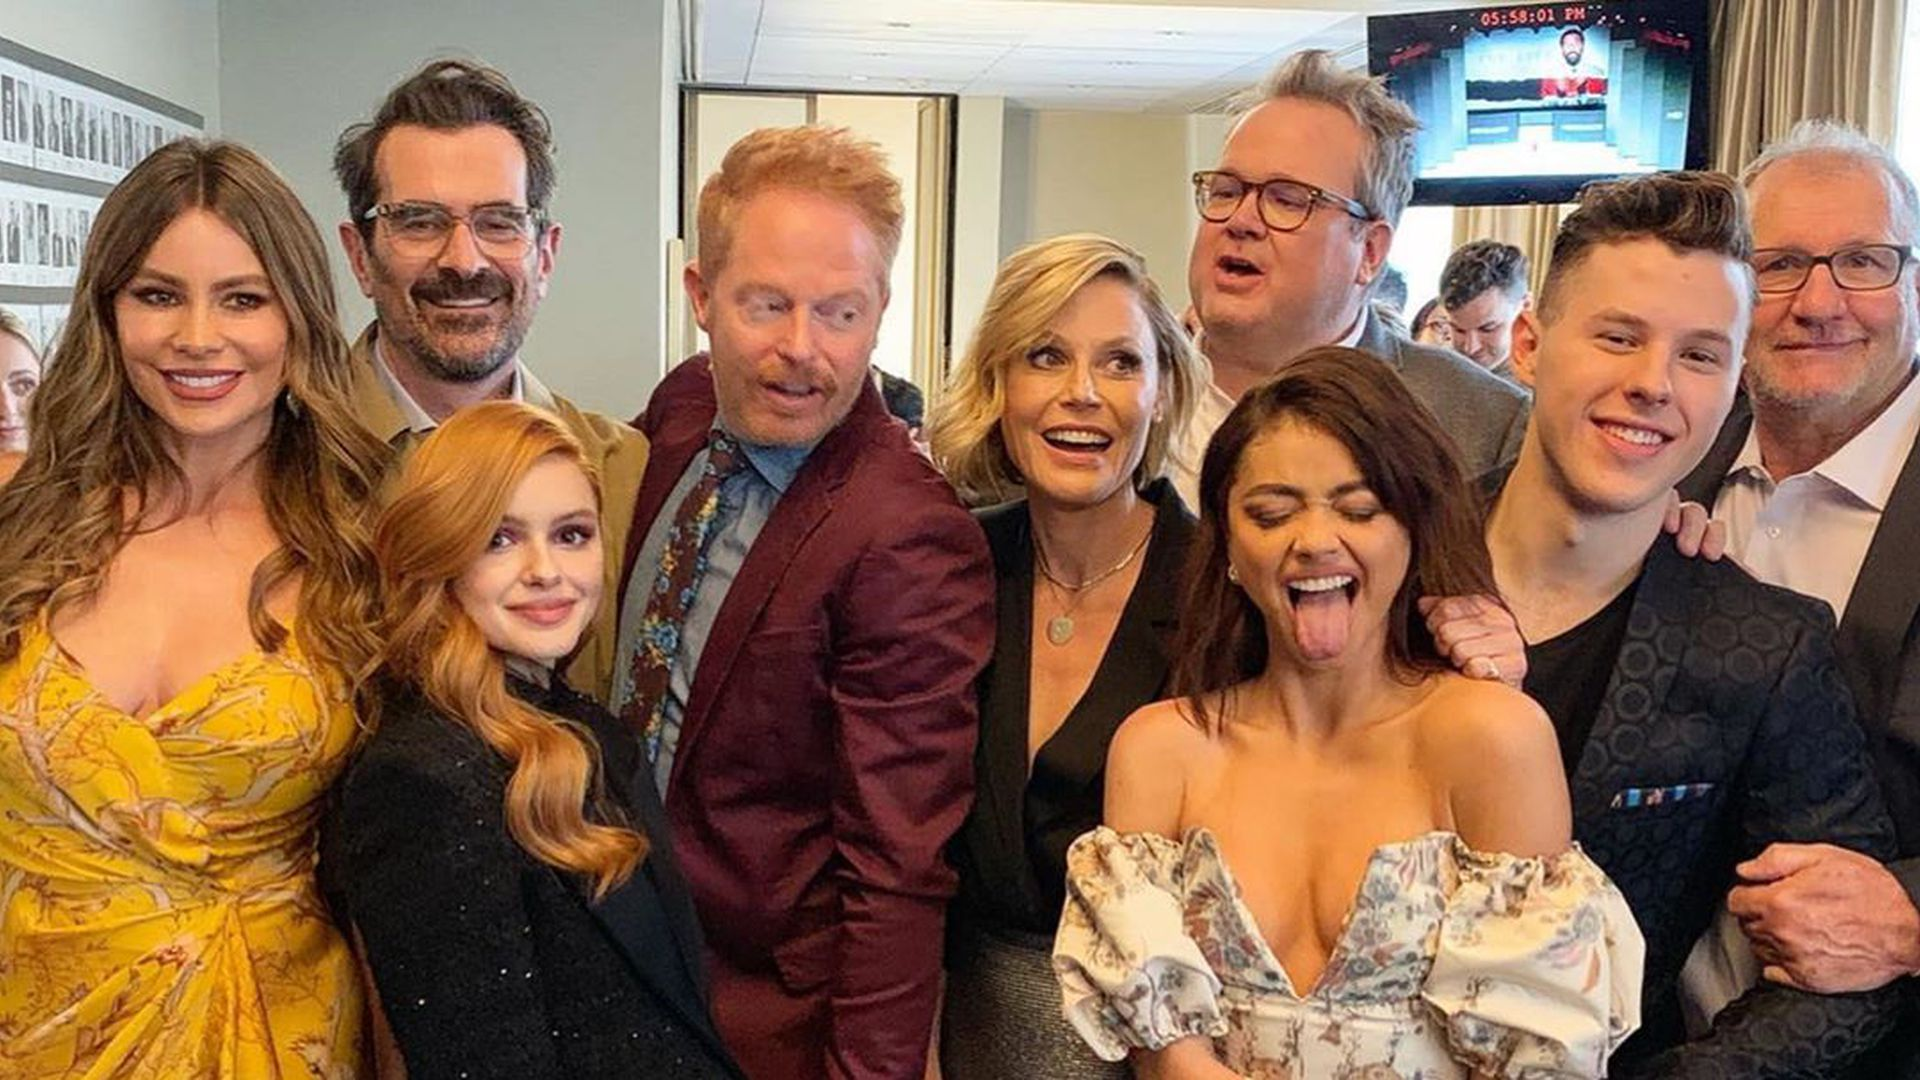 Modern Family Season 11 Ending and Spin-Off Possibilities